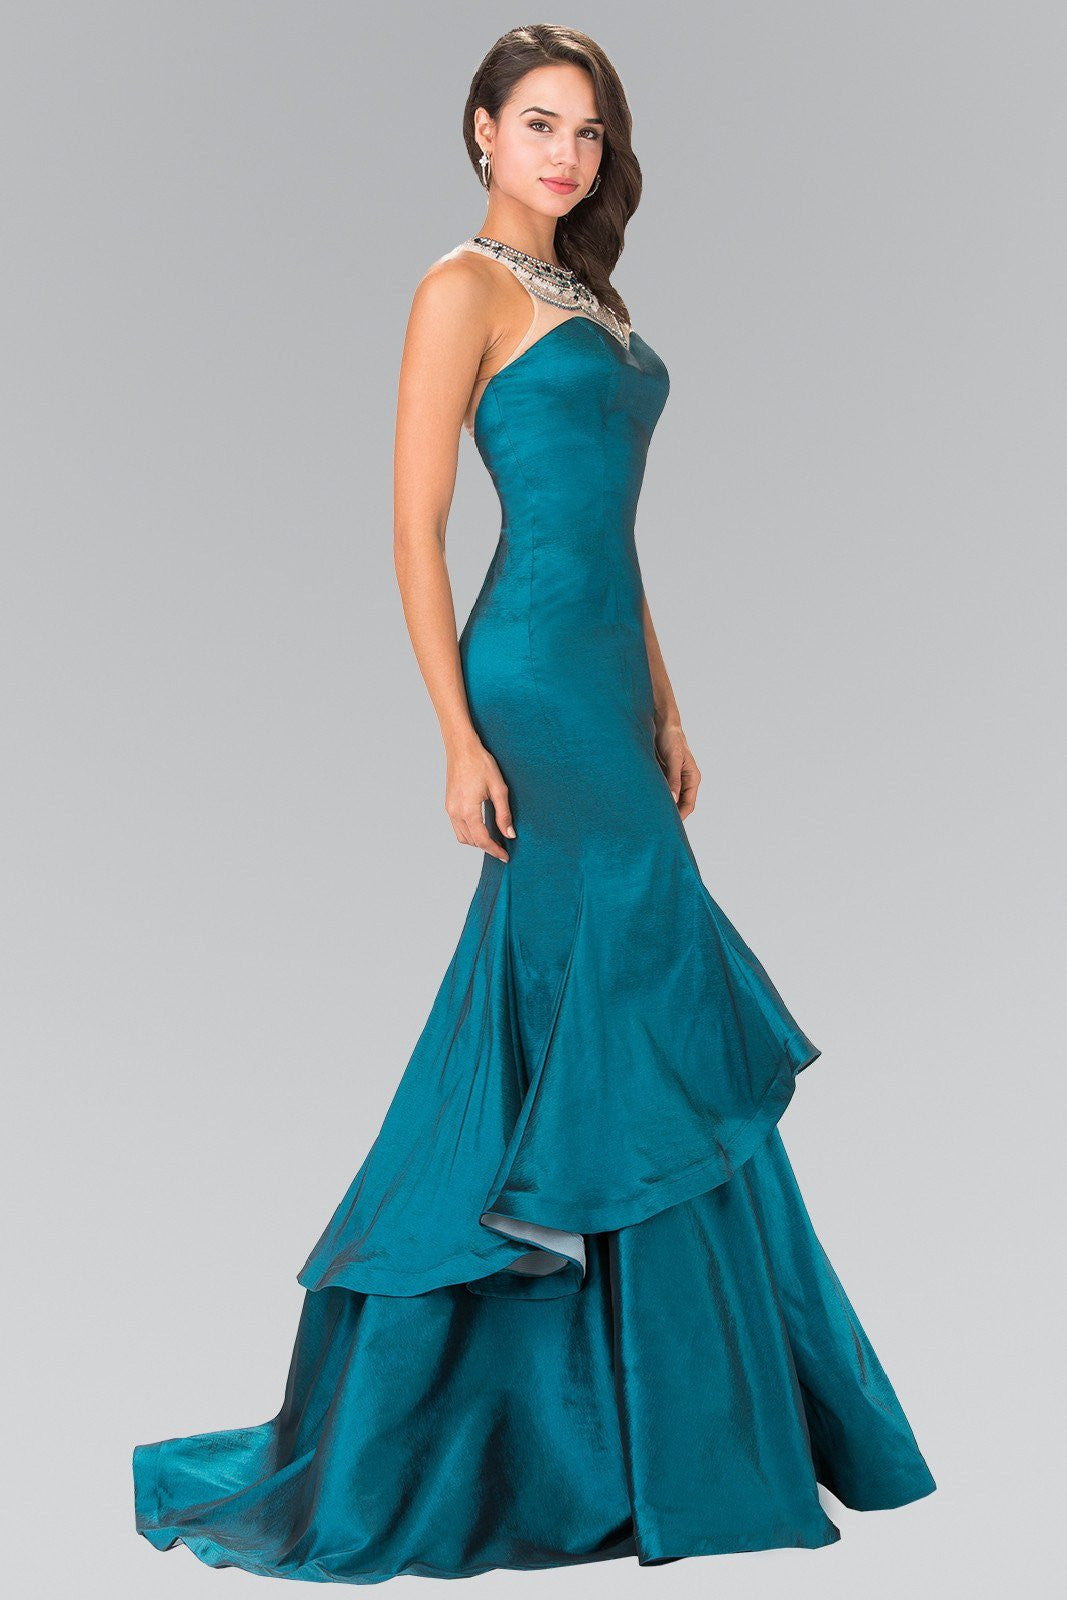 mermaid Satin prom dress #gl2290 – Simply Fab Dress